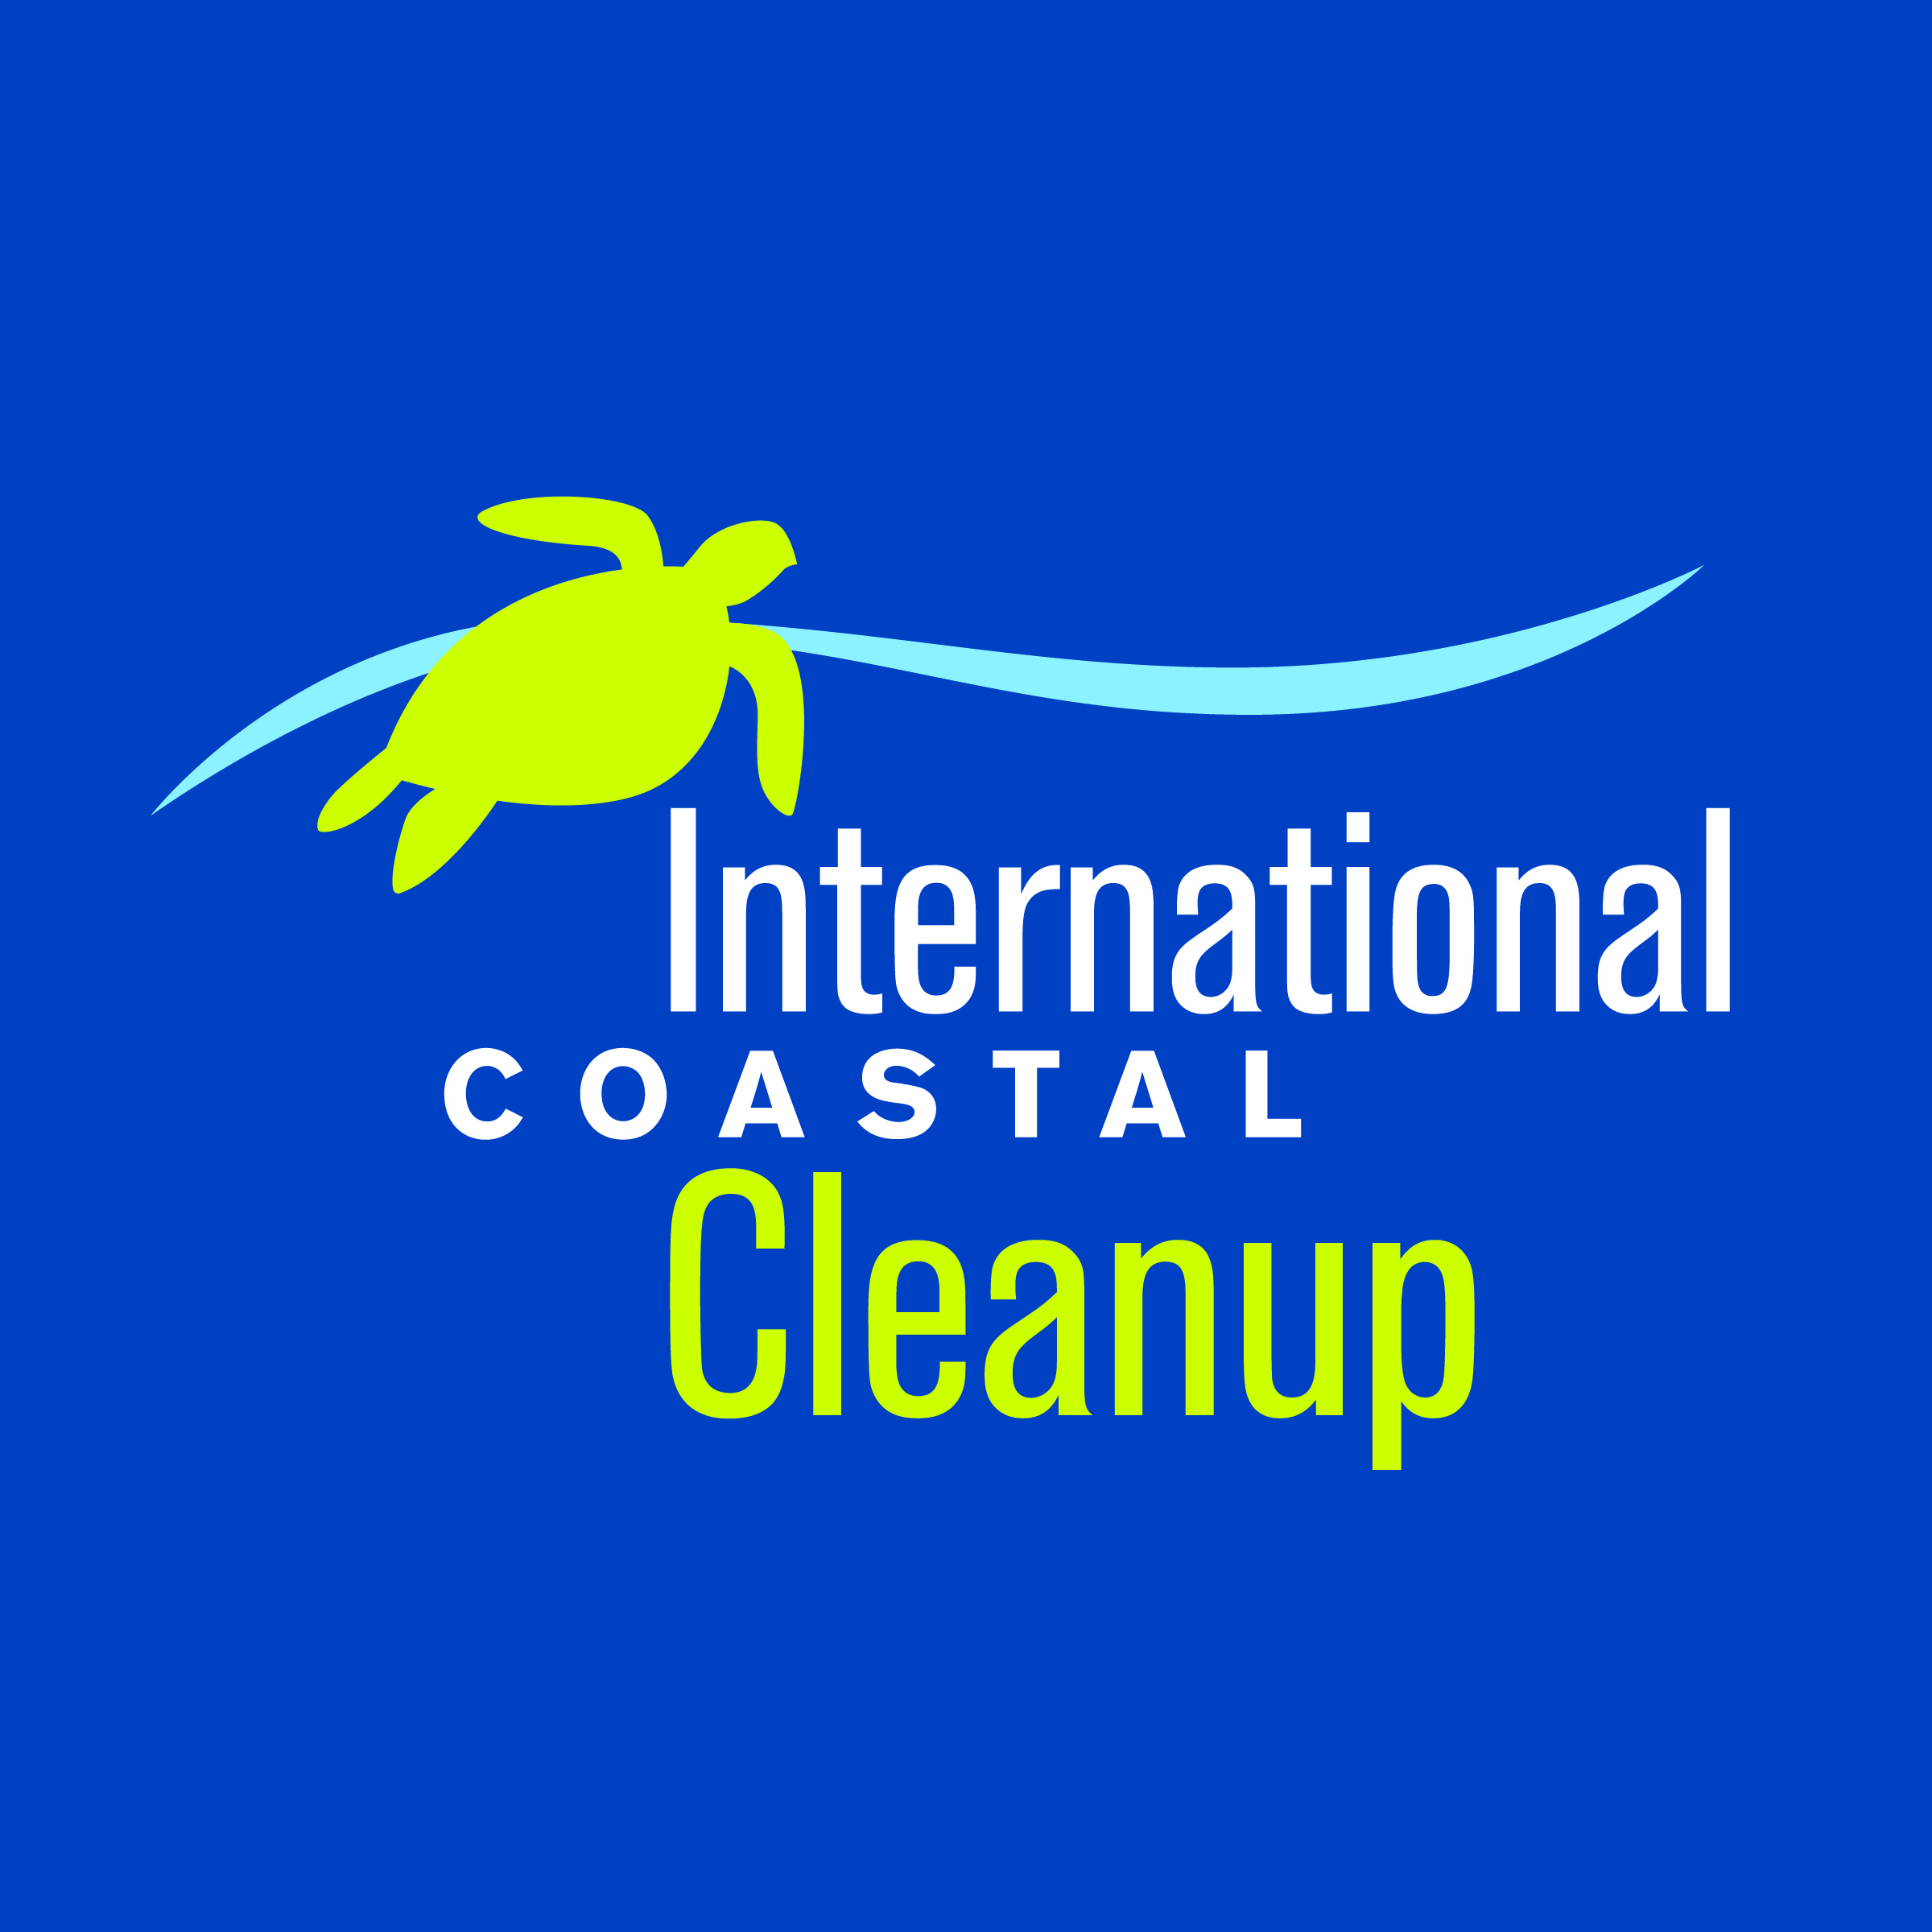 International Coastal Cleanup